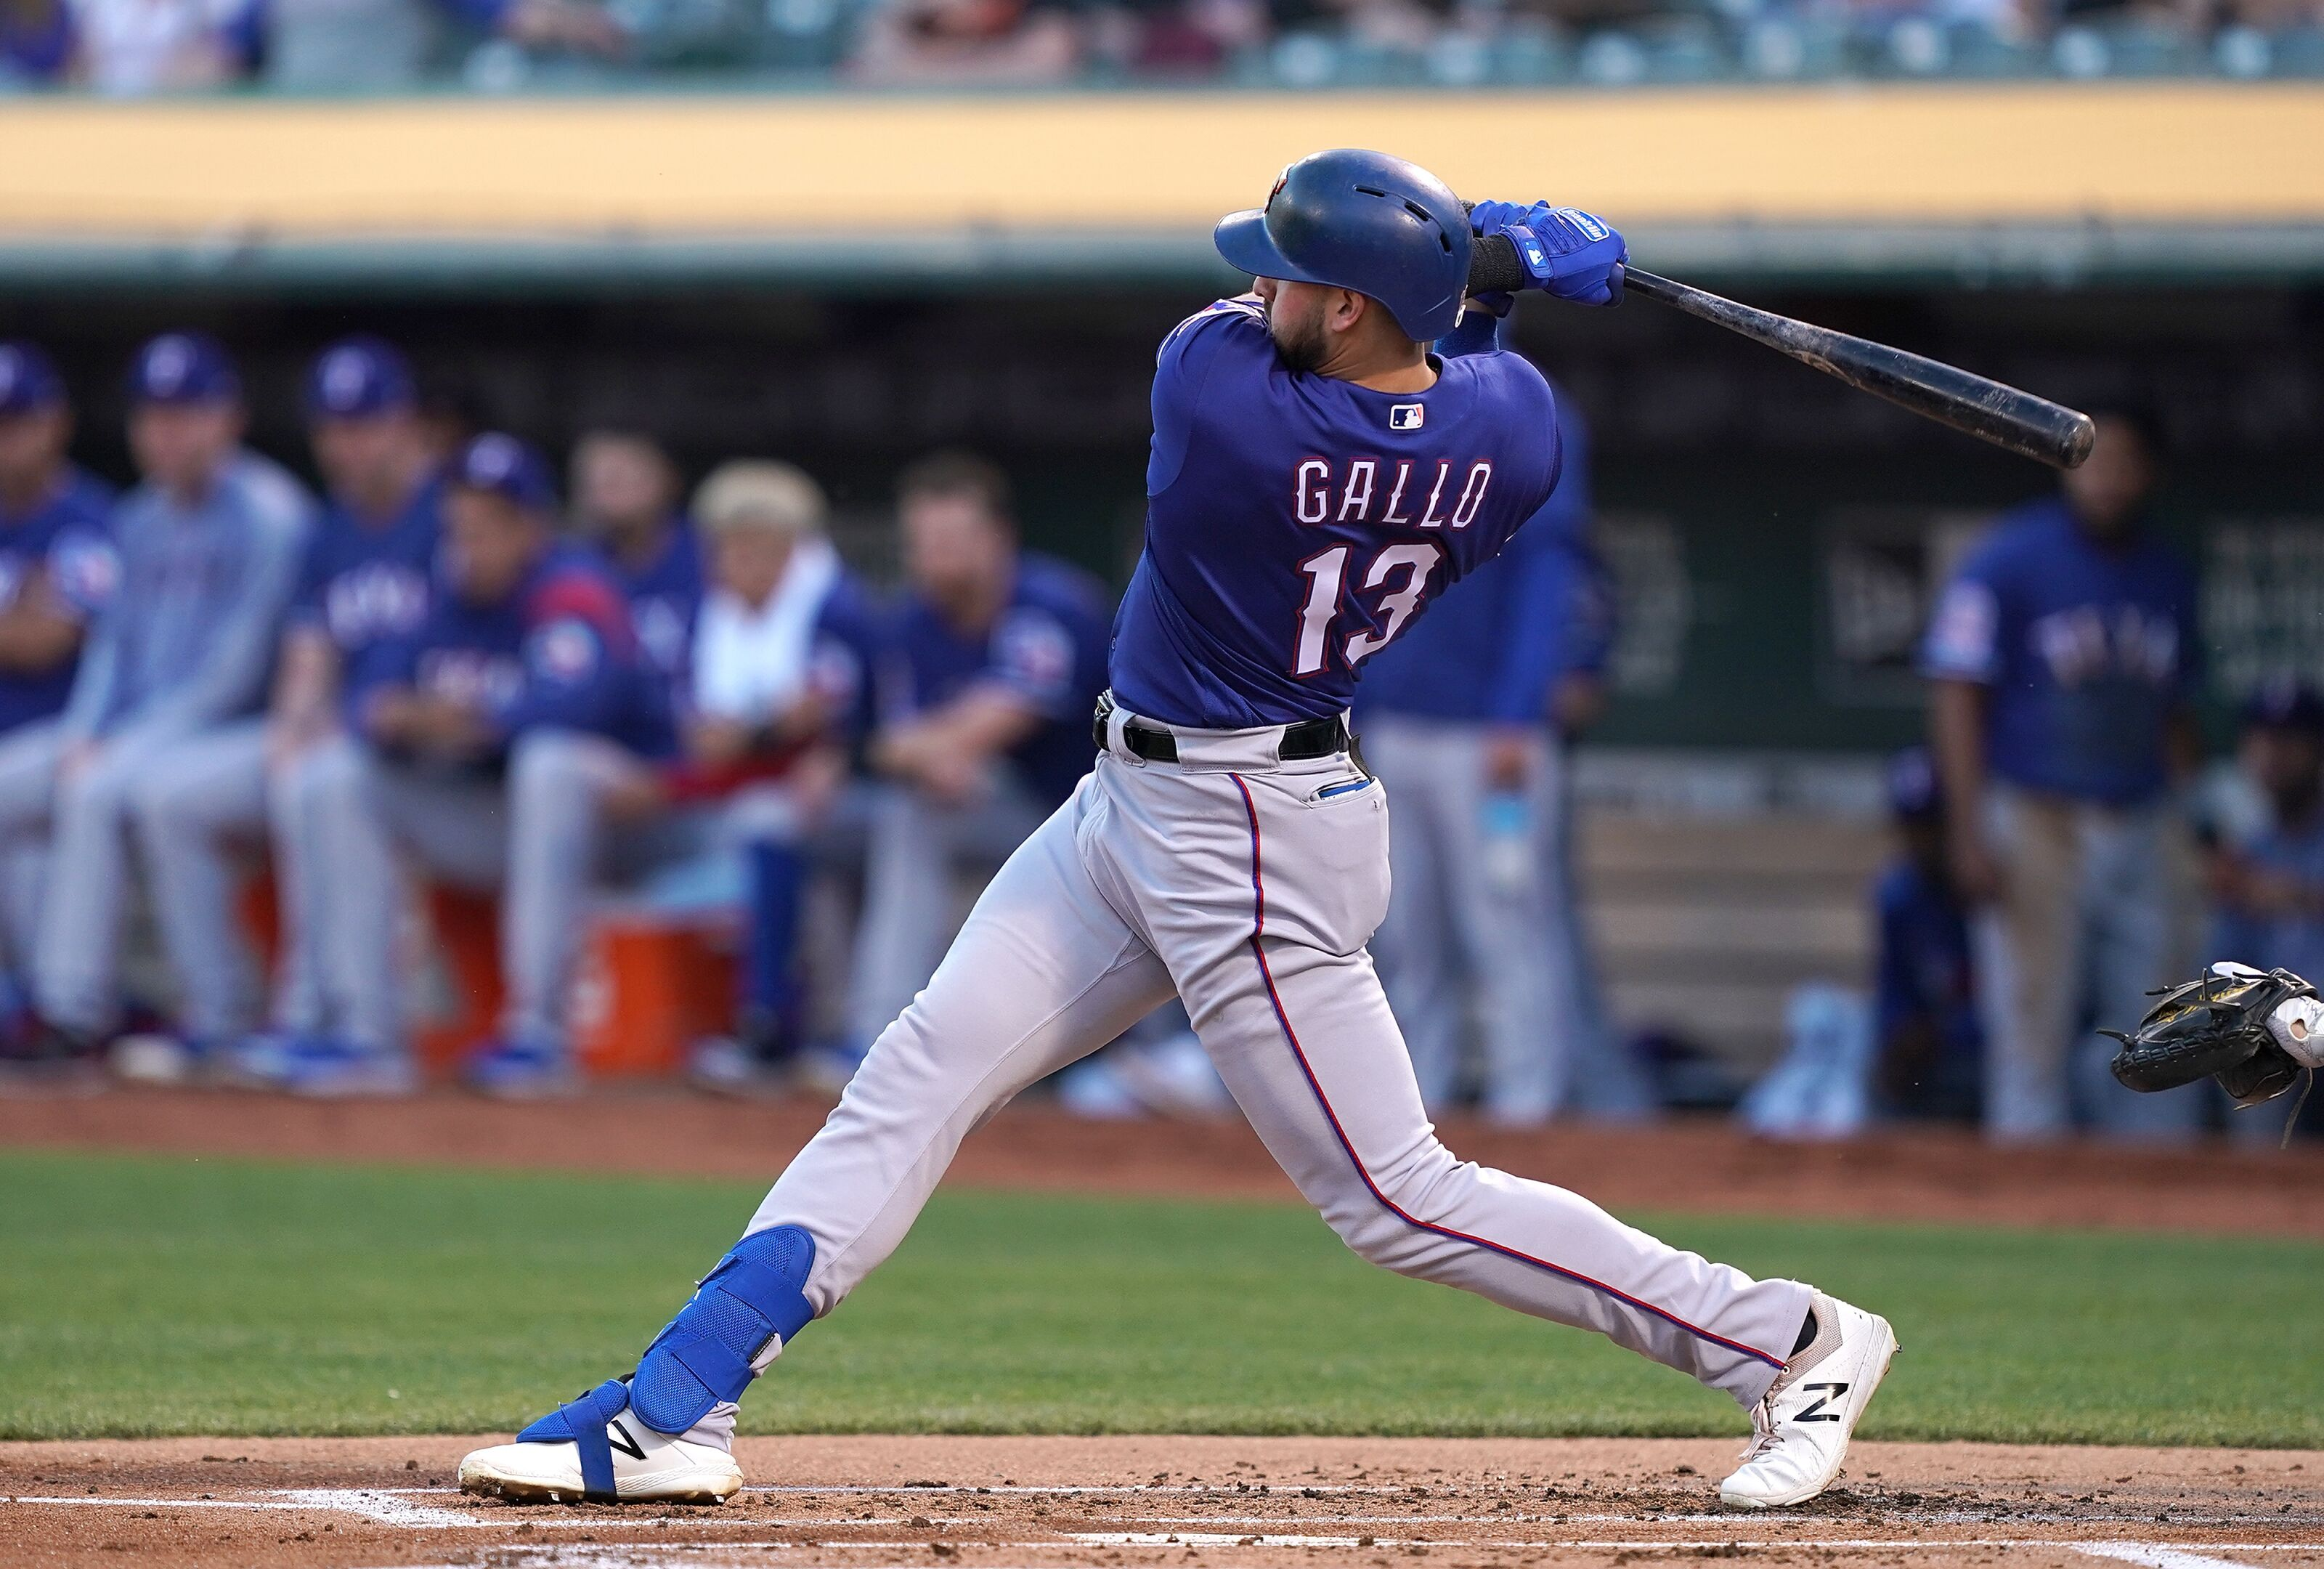 Fantasy Baseball: Time to sell high on these players